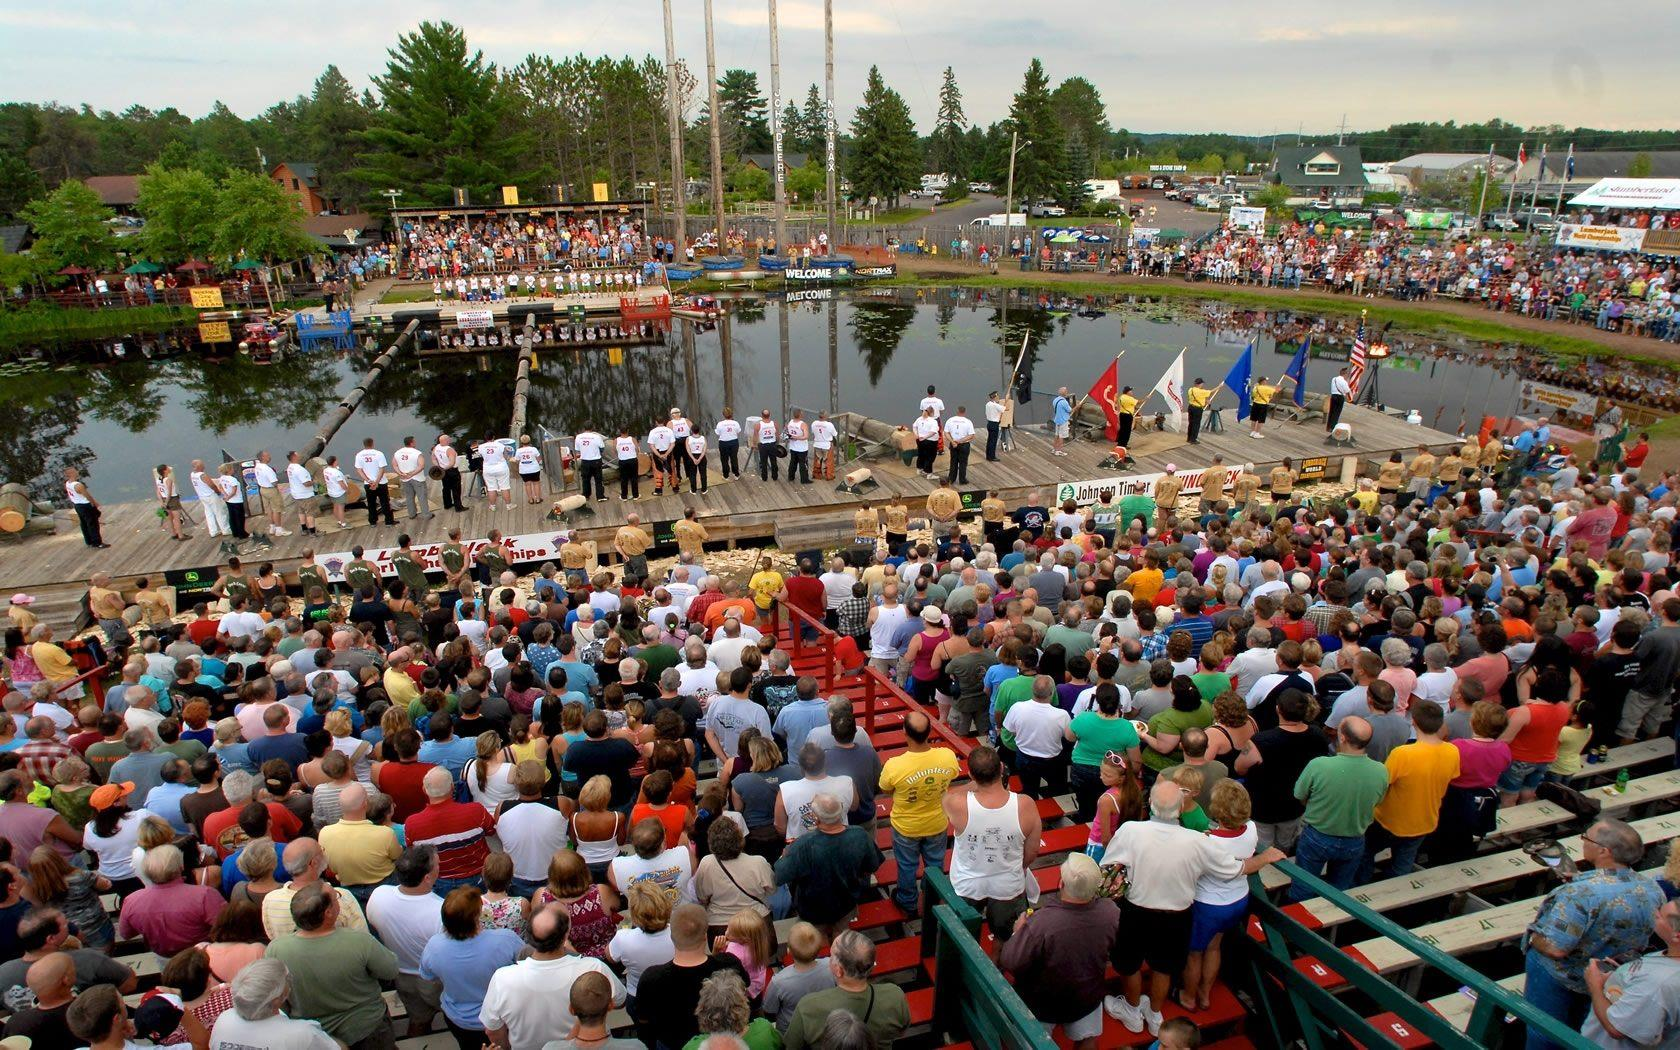 Lumberjack Shows & Lumberjack World Championships